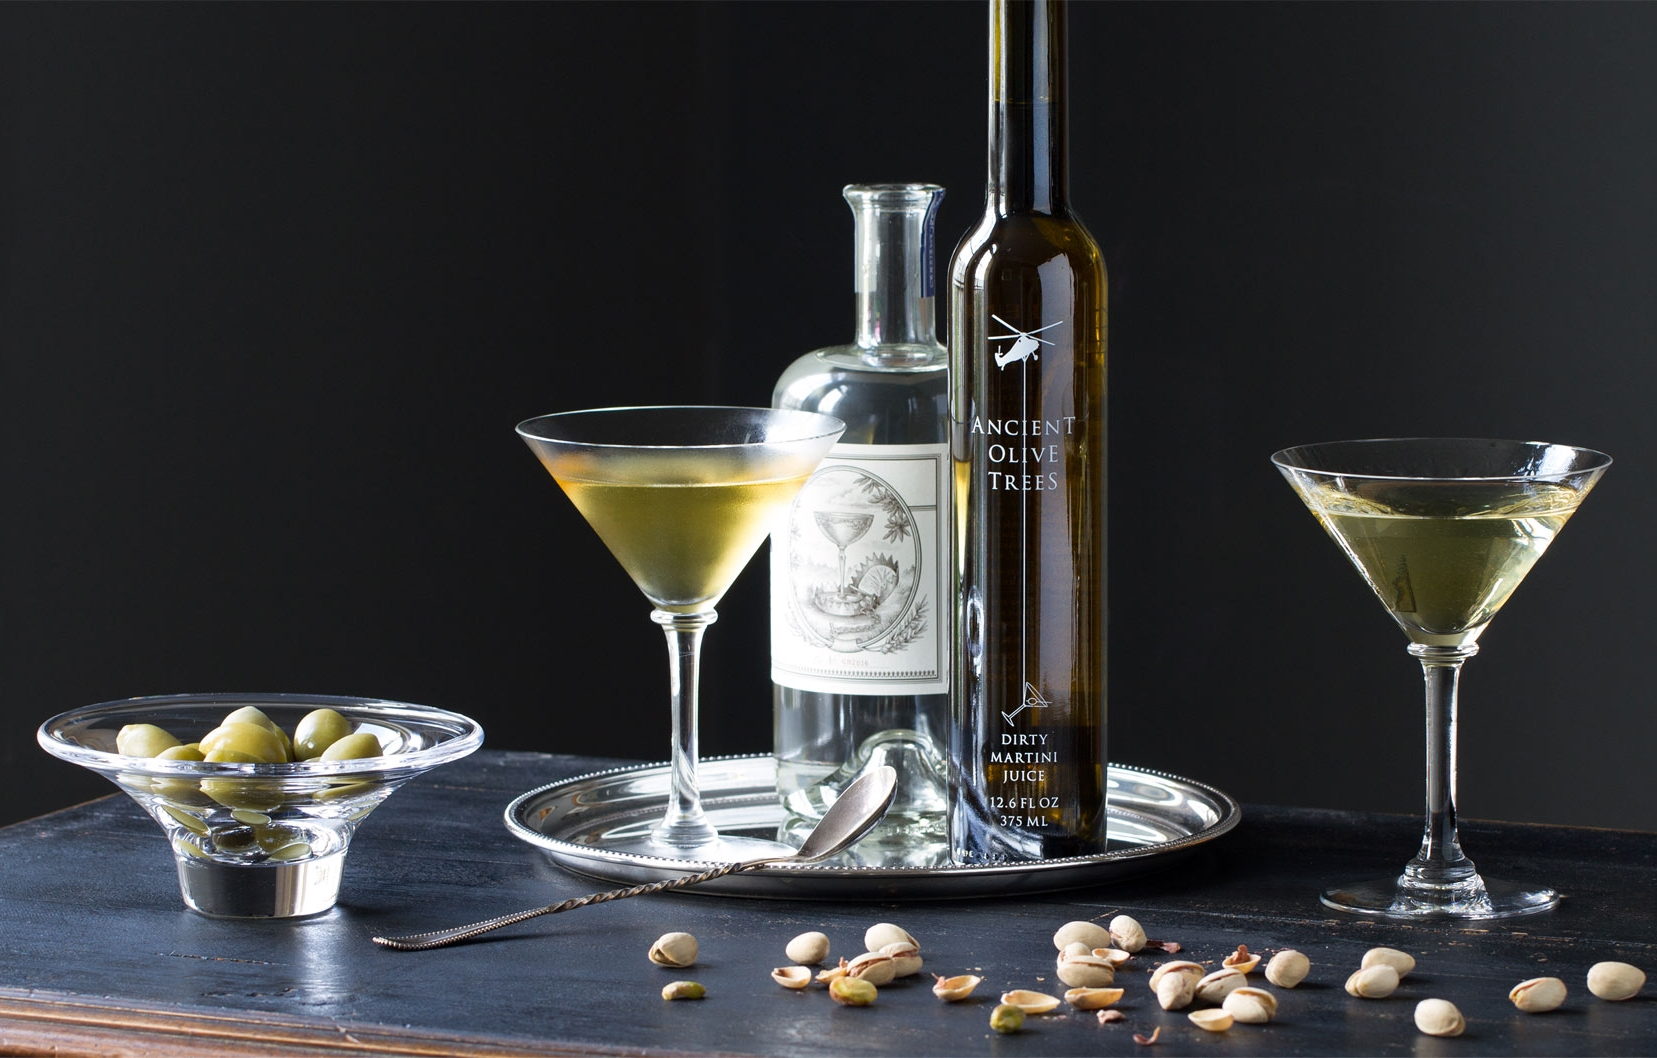 dirty martini - ancient olive trees.jpg